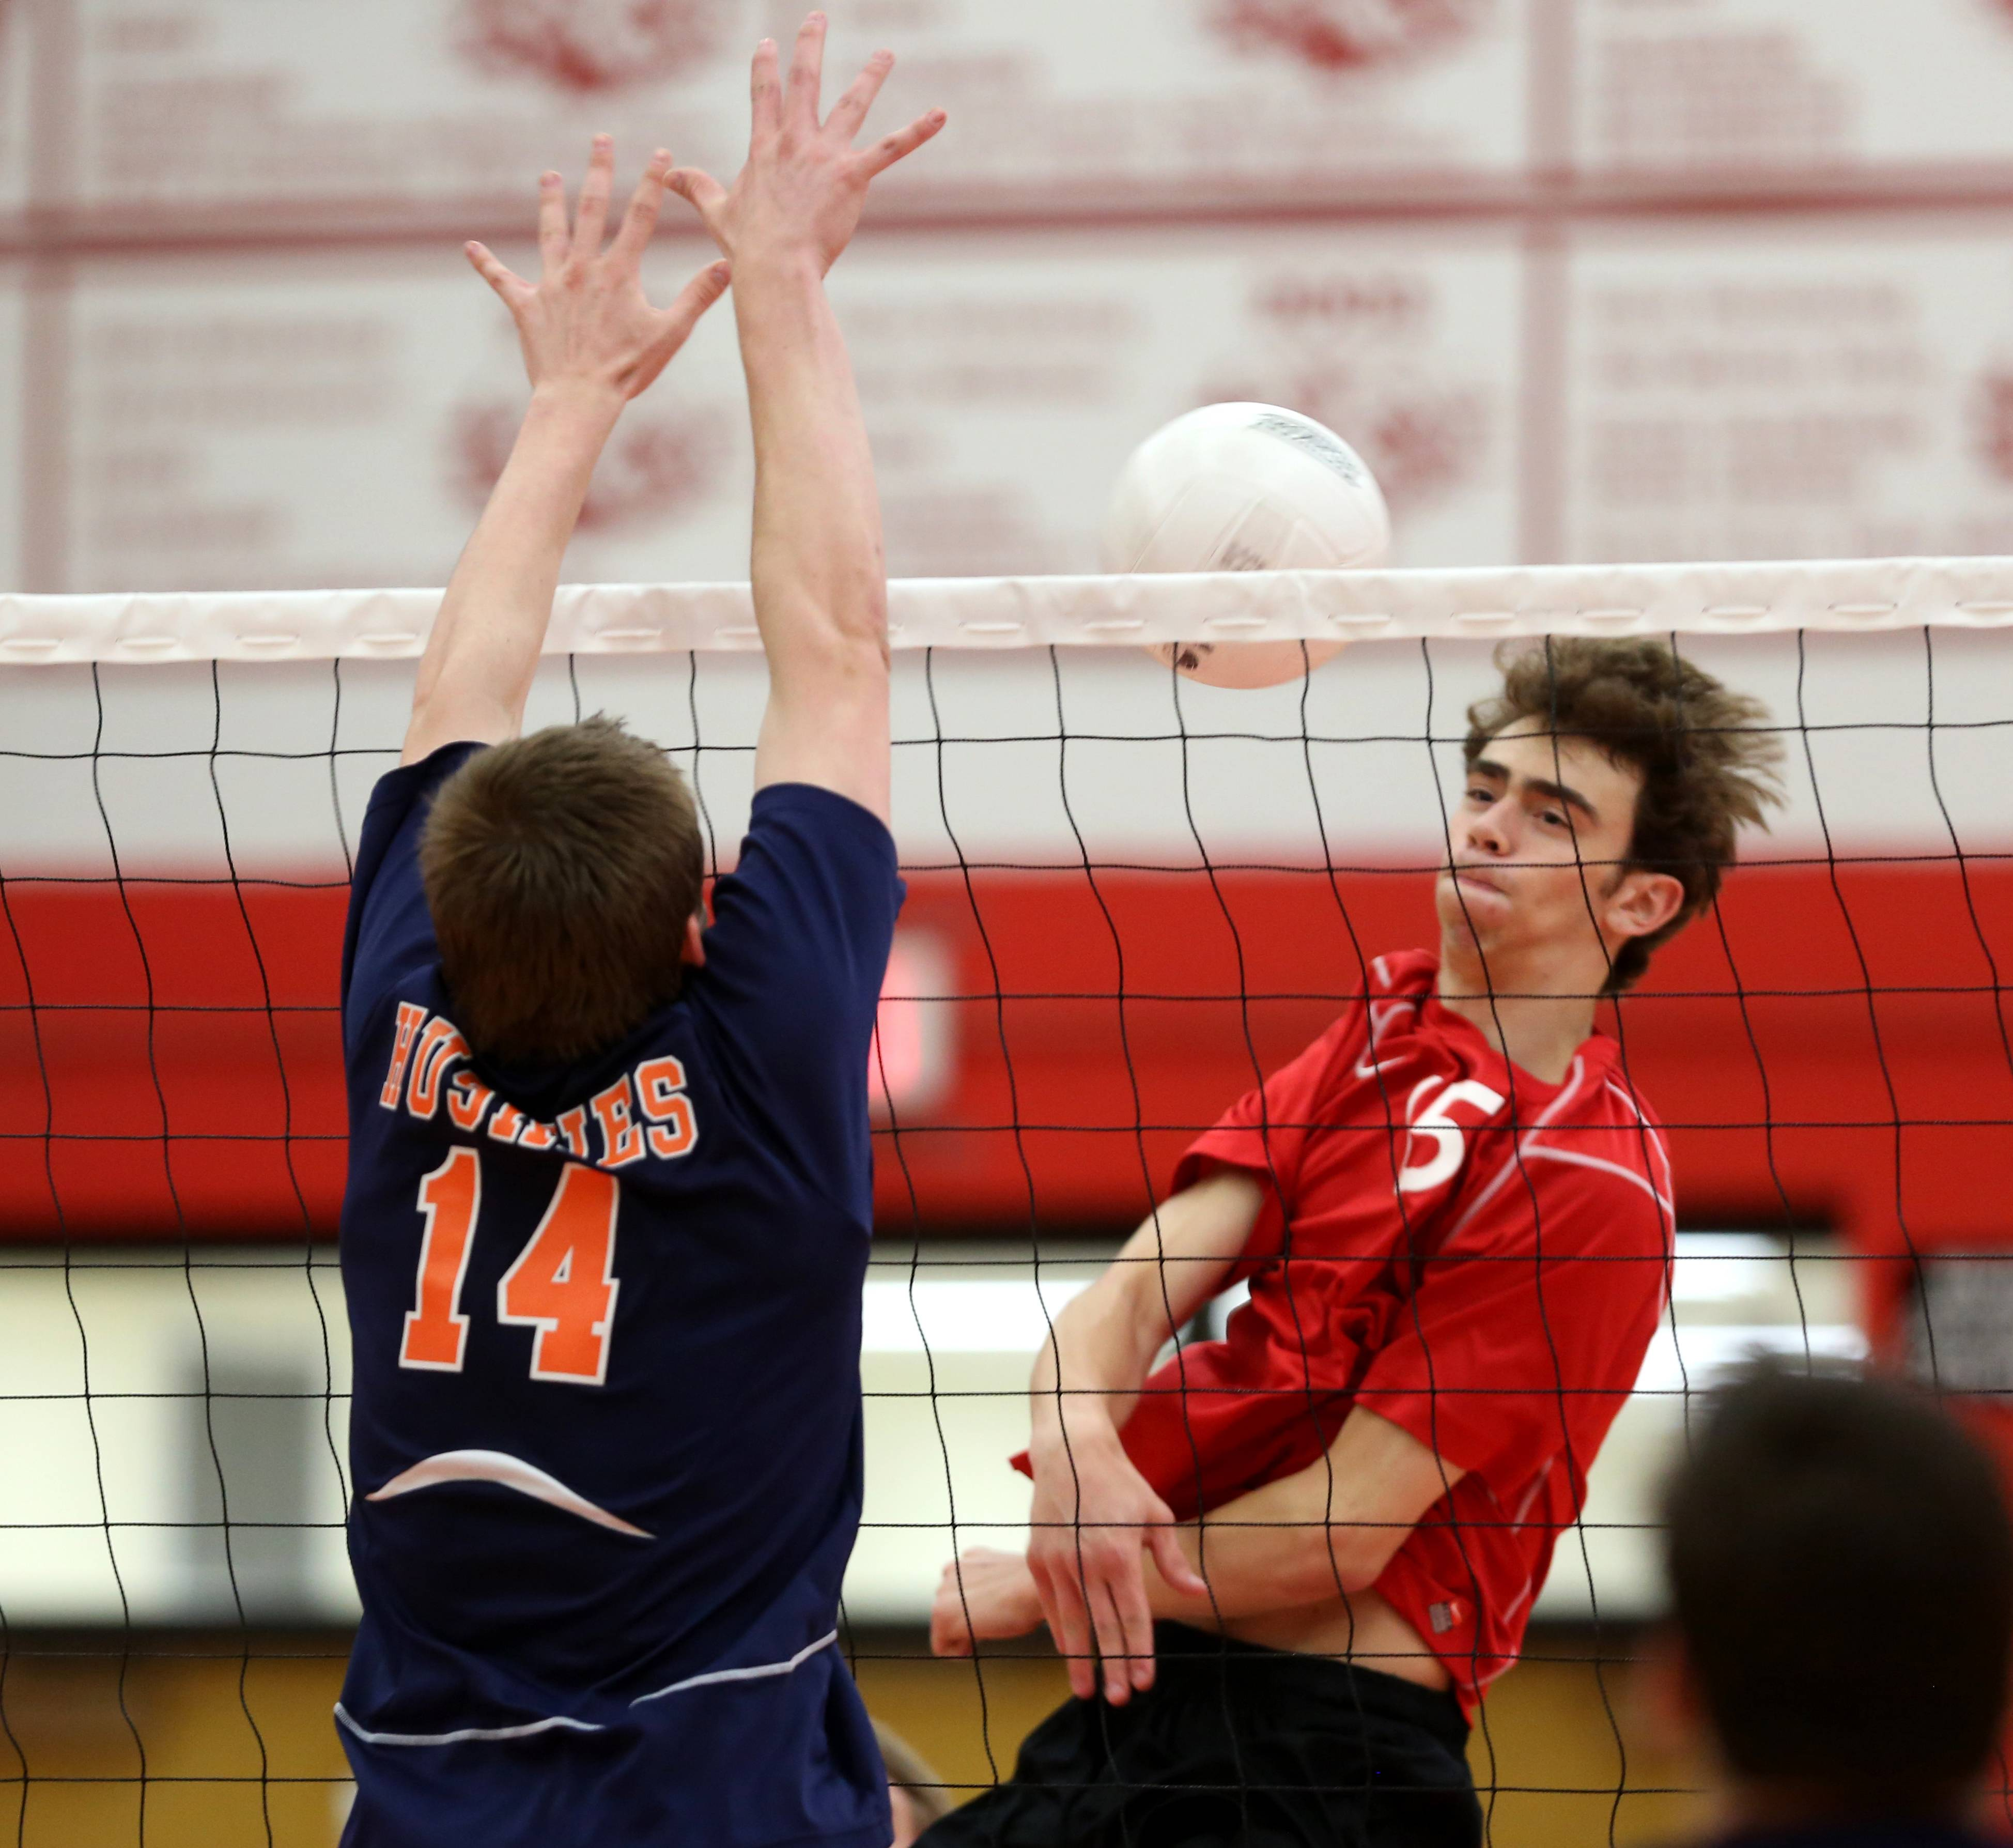 Naperville North's Frank Dore, left, battles Naperville Central's Tanner Beck, right, during boys volleyball action.